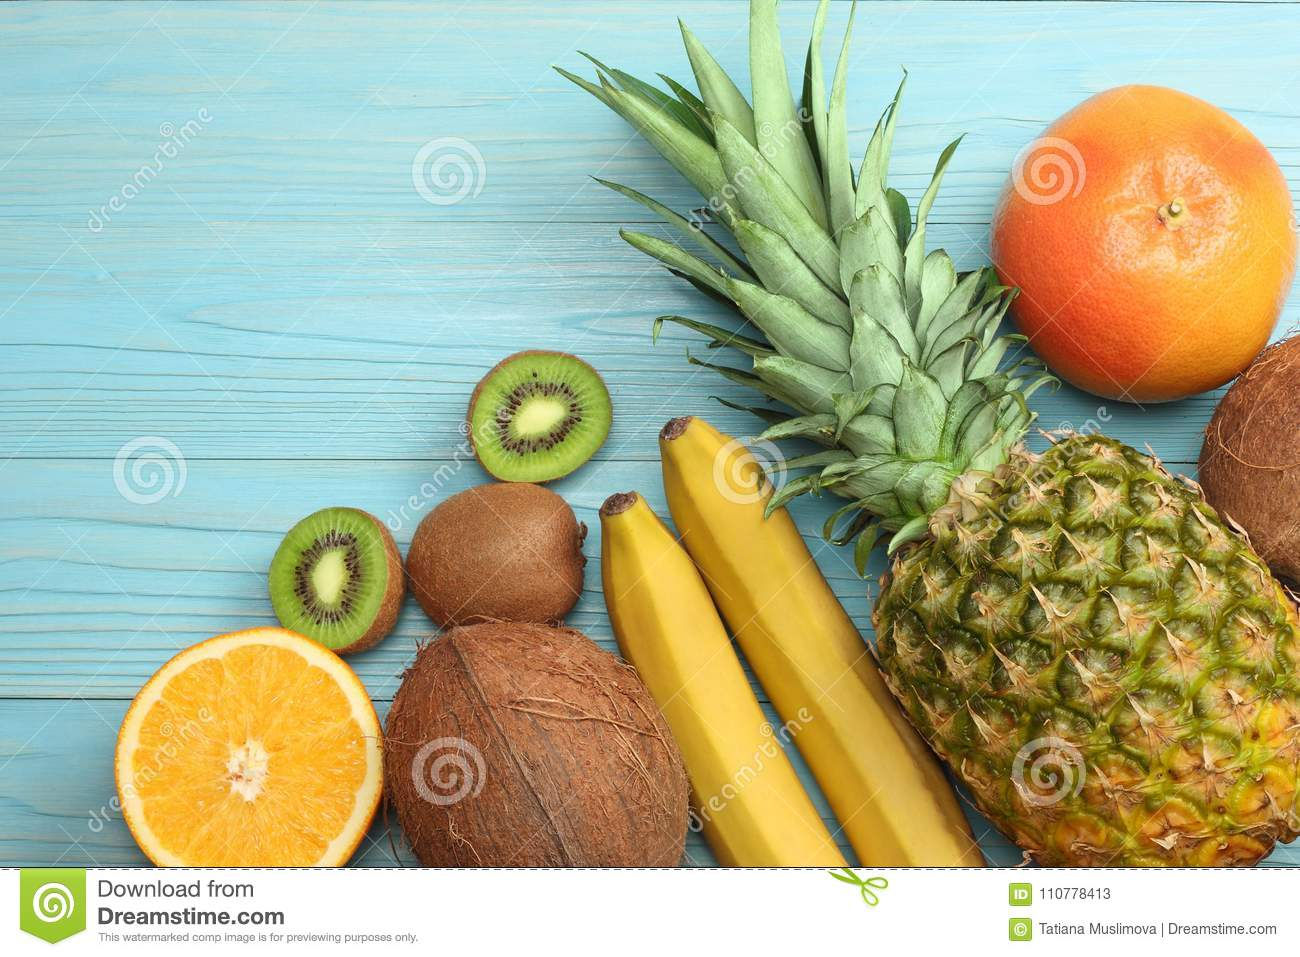 Download Mix Of Fresh Coconut, Banana, Kiwi Fruit, Orange And Pineapple On Blue Wooden Background. Top View With Copy Space Stock Image - Image of yellow, copy: 110778413